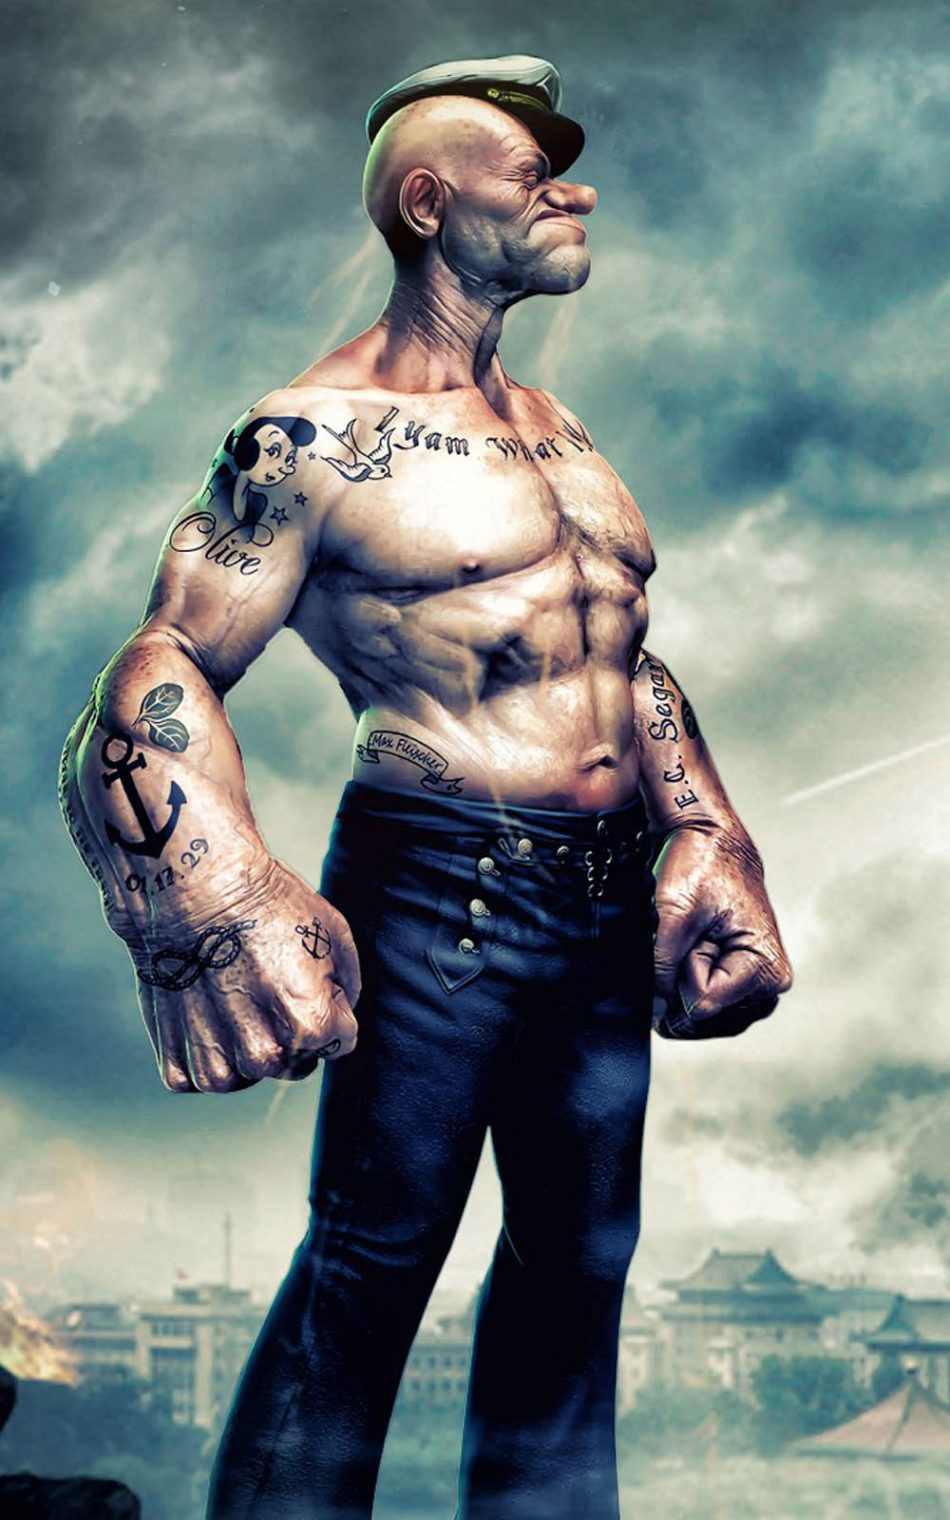 Popeye Muscular Artwork Download Free 100 Pure Hd